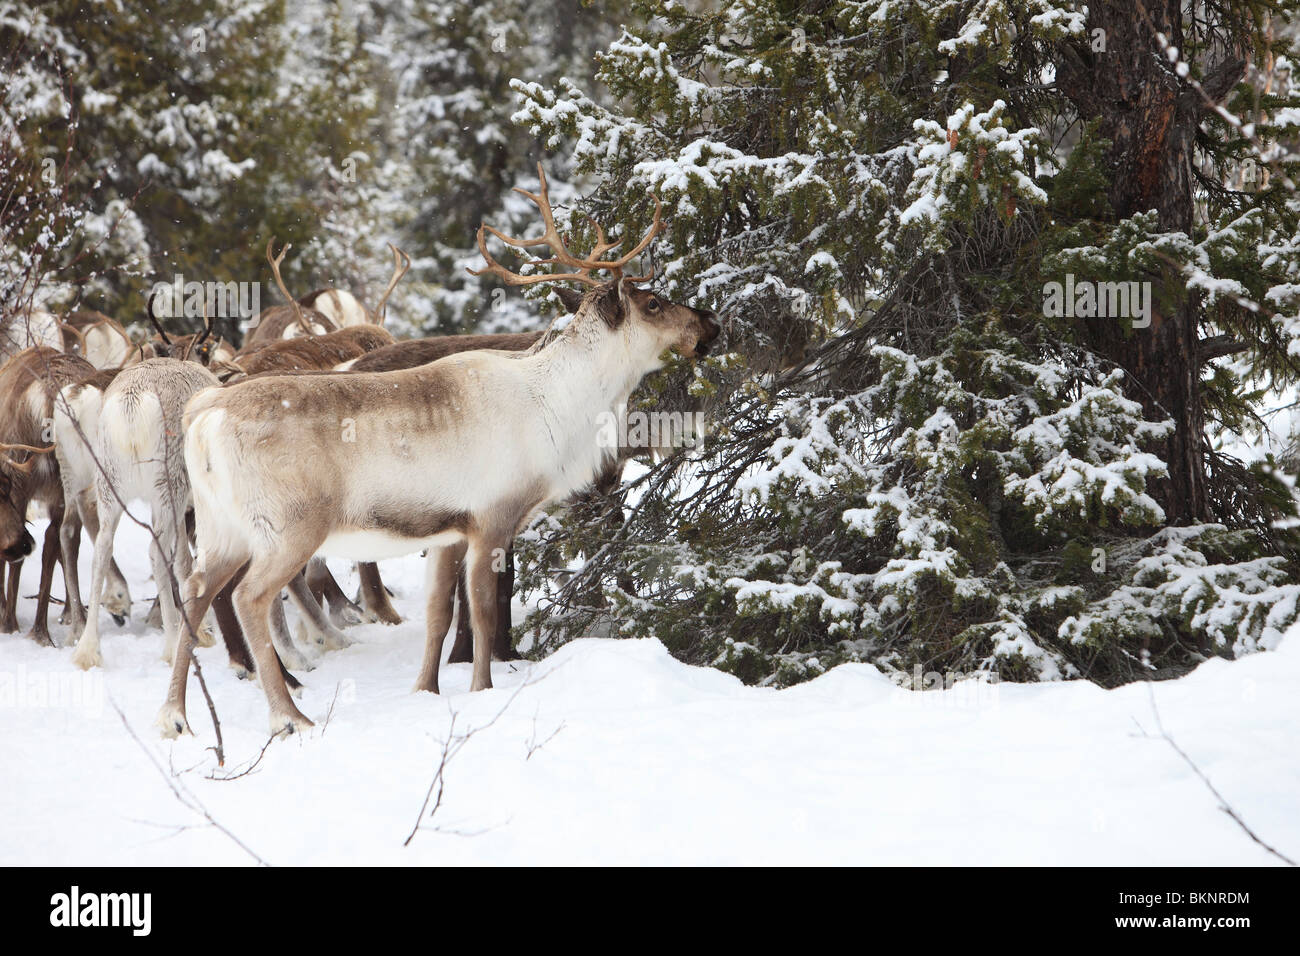 The annual Sami springtime reindeer migration from Stubba nr Gällivare in Sweden through their ancestral lands - Stock Image